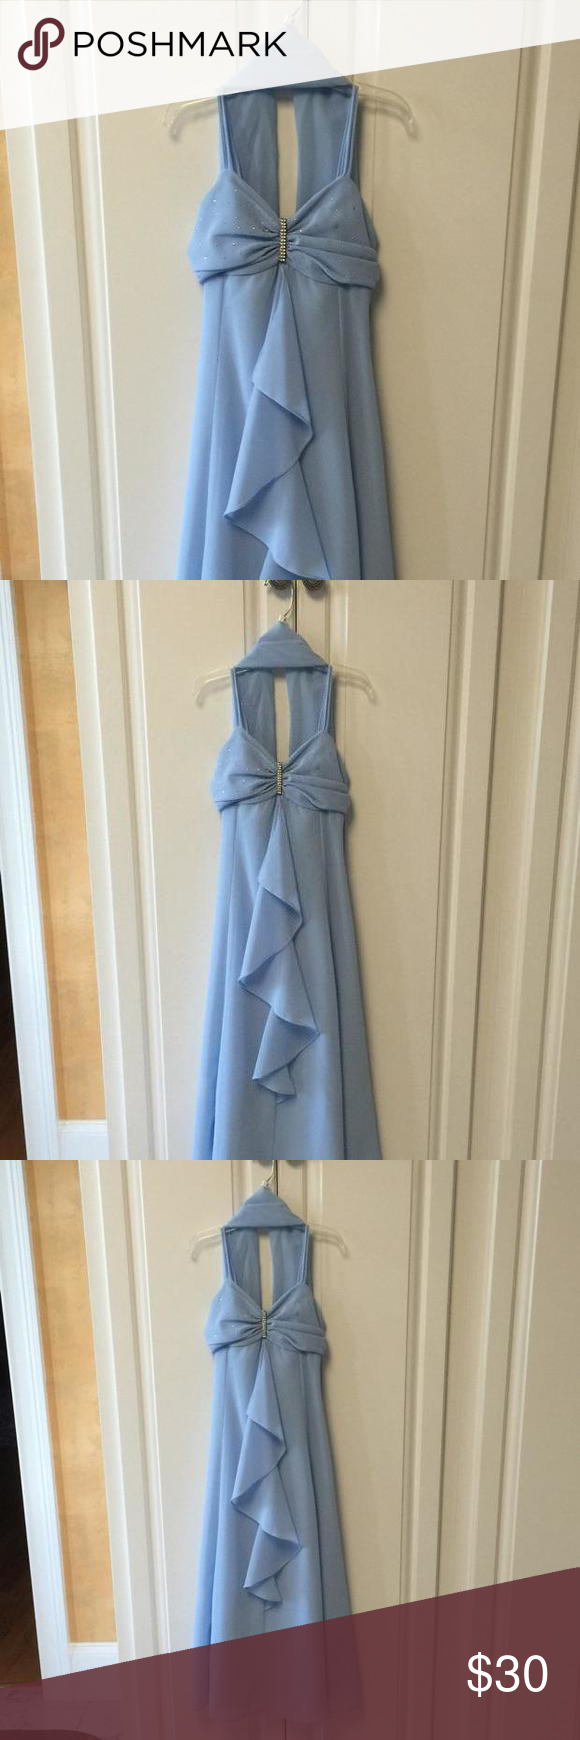 Bono kids long light blue formal dress size includes scarf